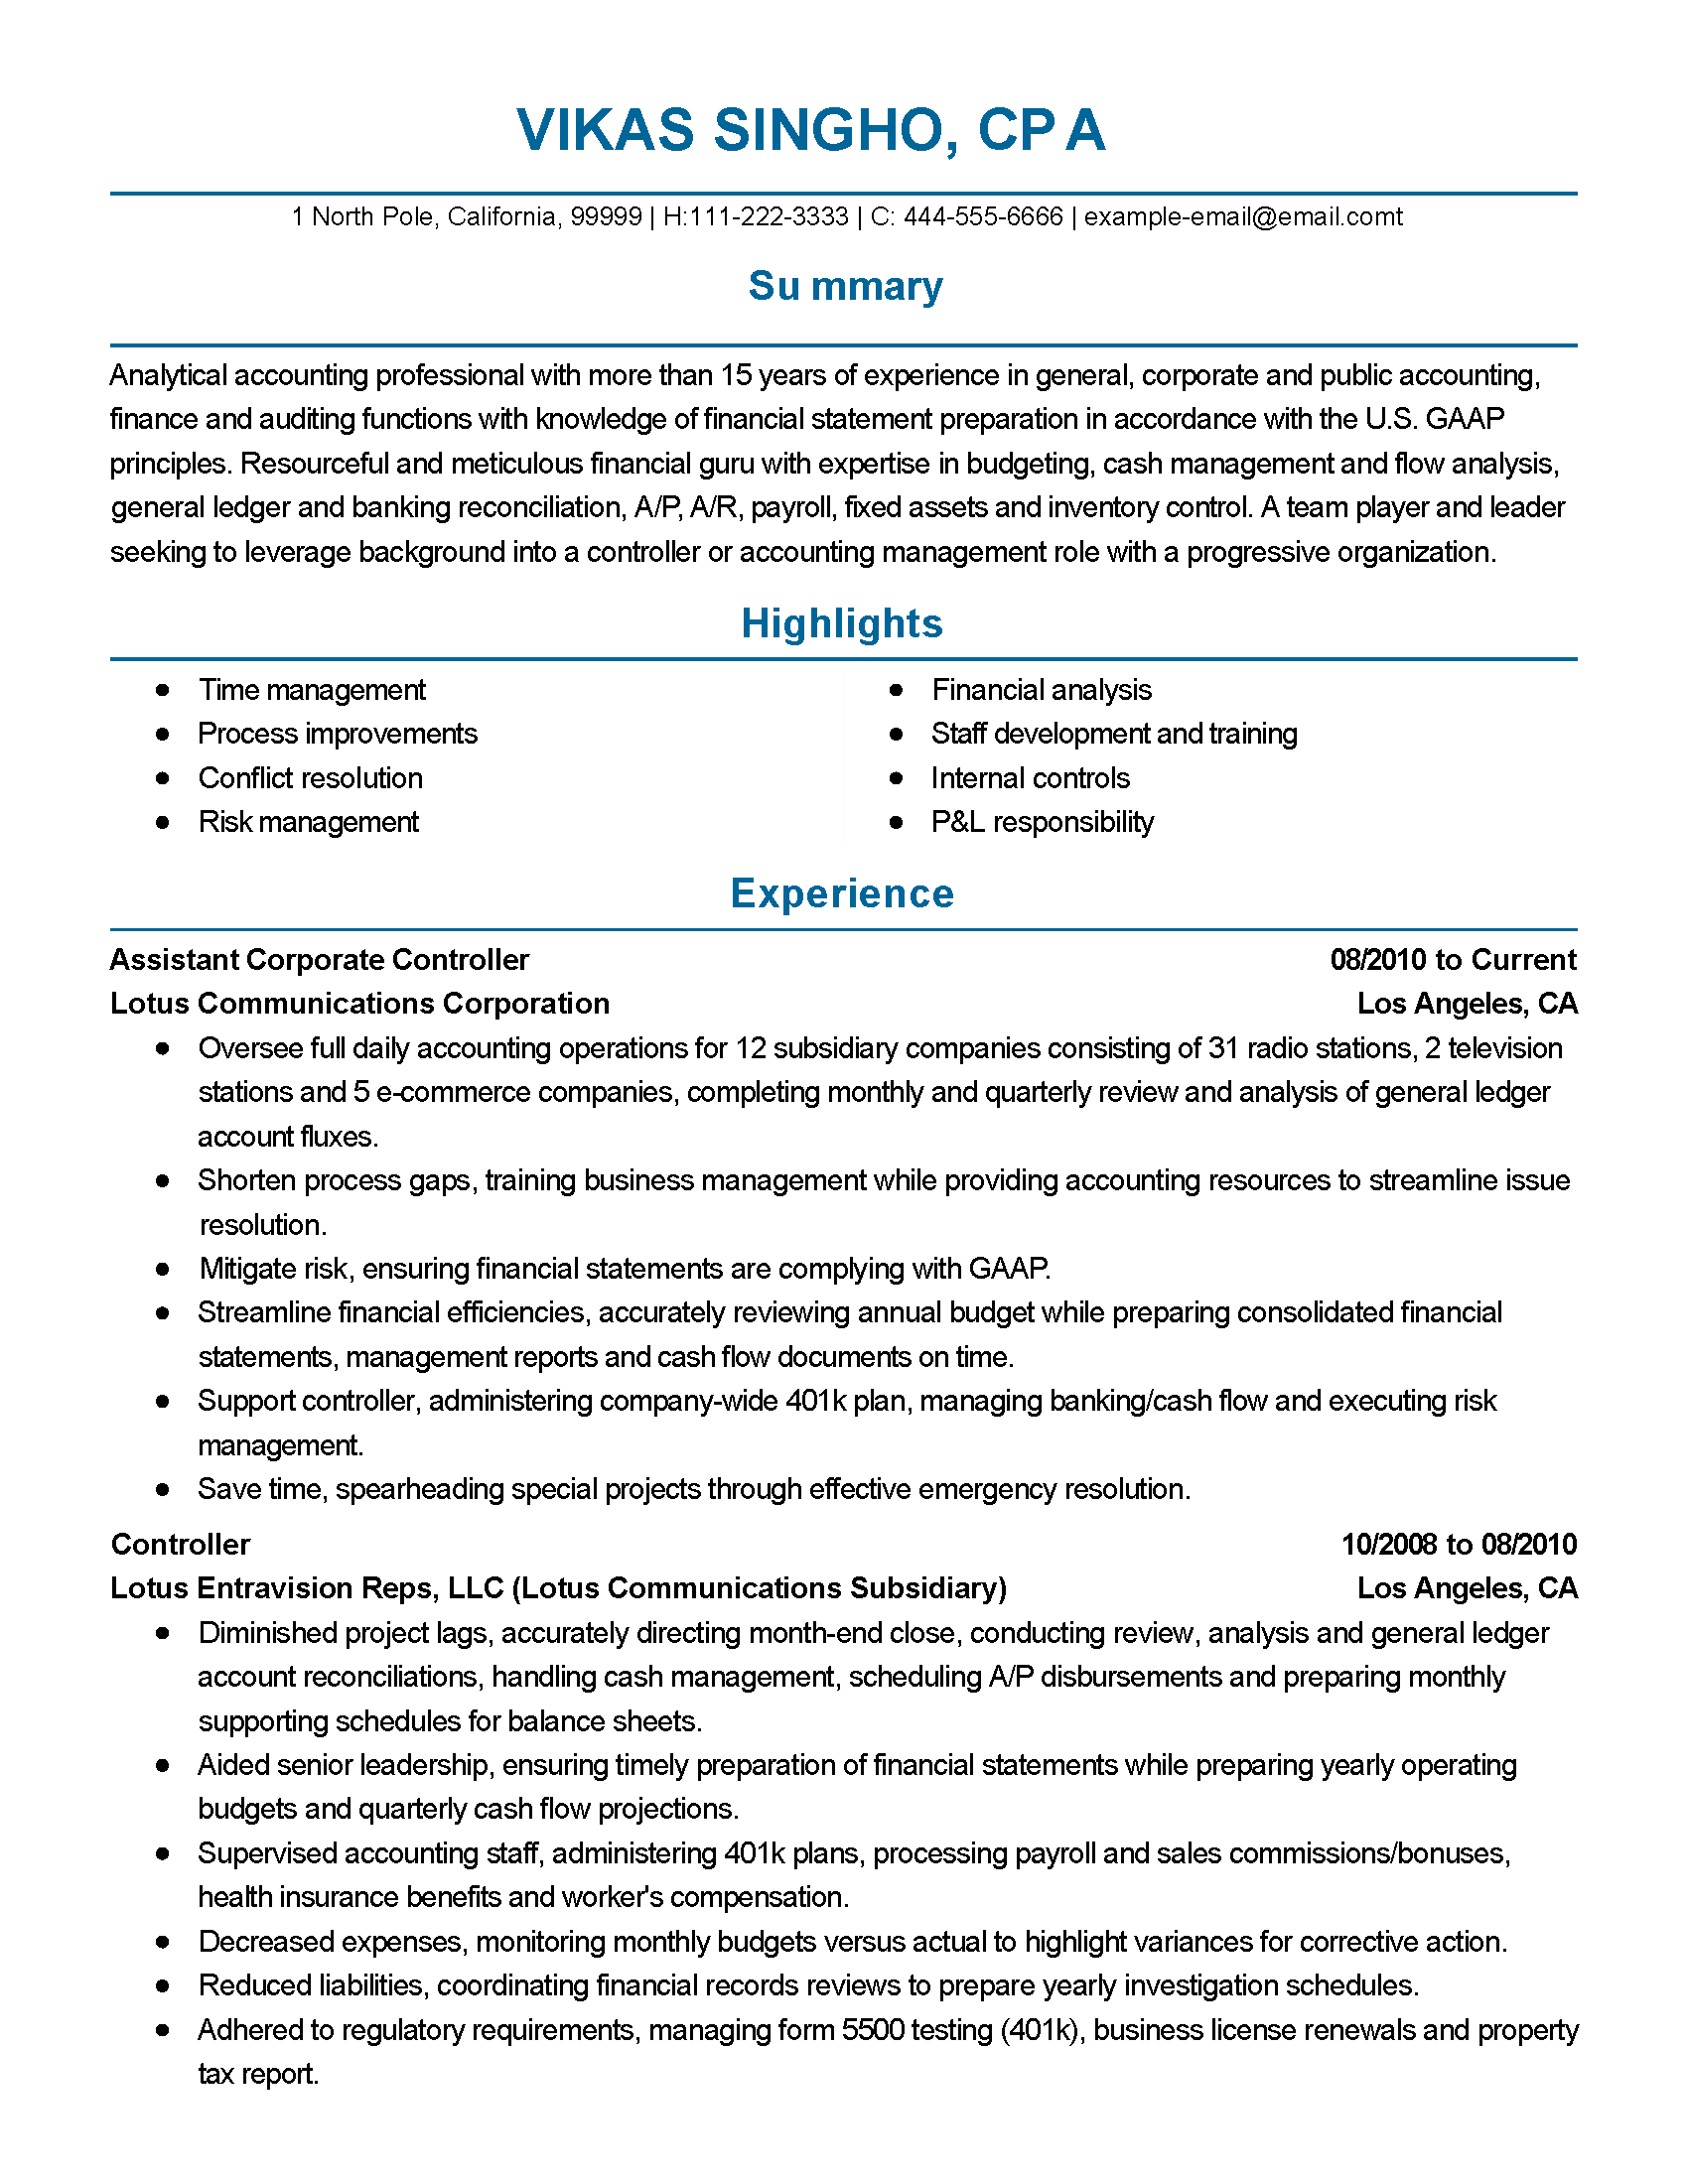 Investment Accountant Resume Professional Assistant Corporate Controller Templates To